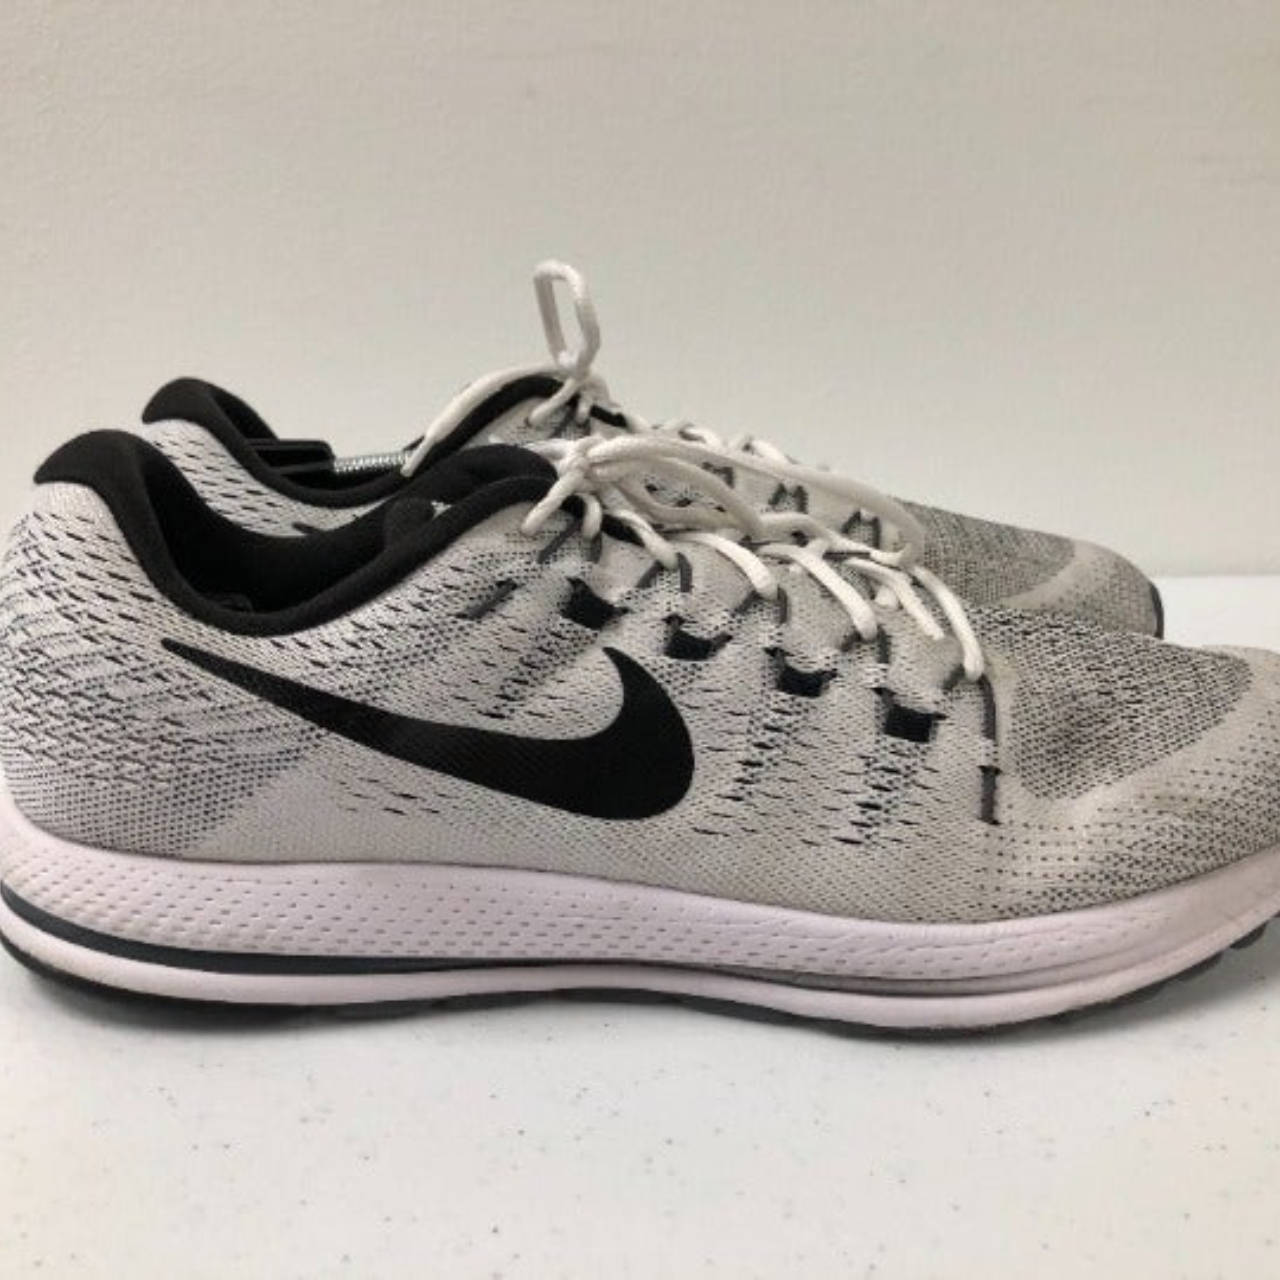 Product Image 1 - Nike Air Zoom Vomero 12